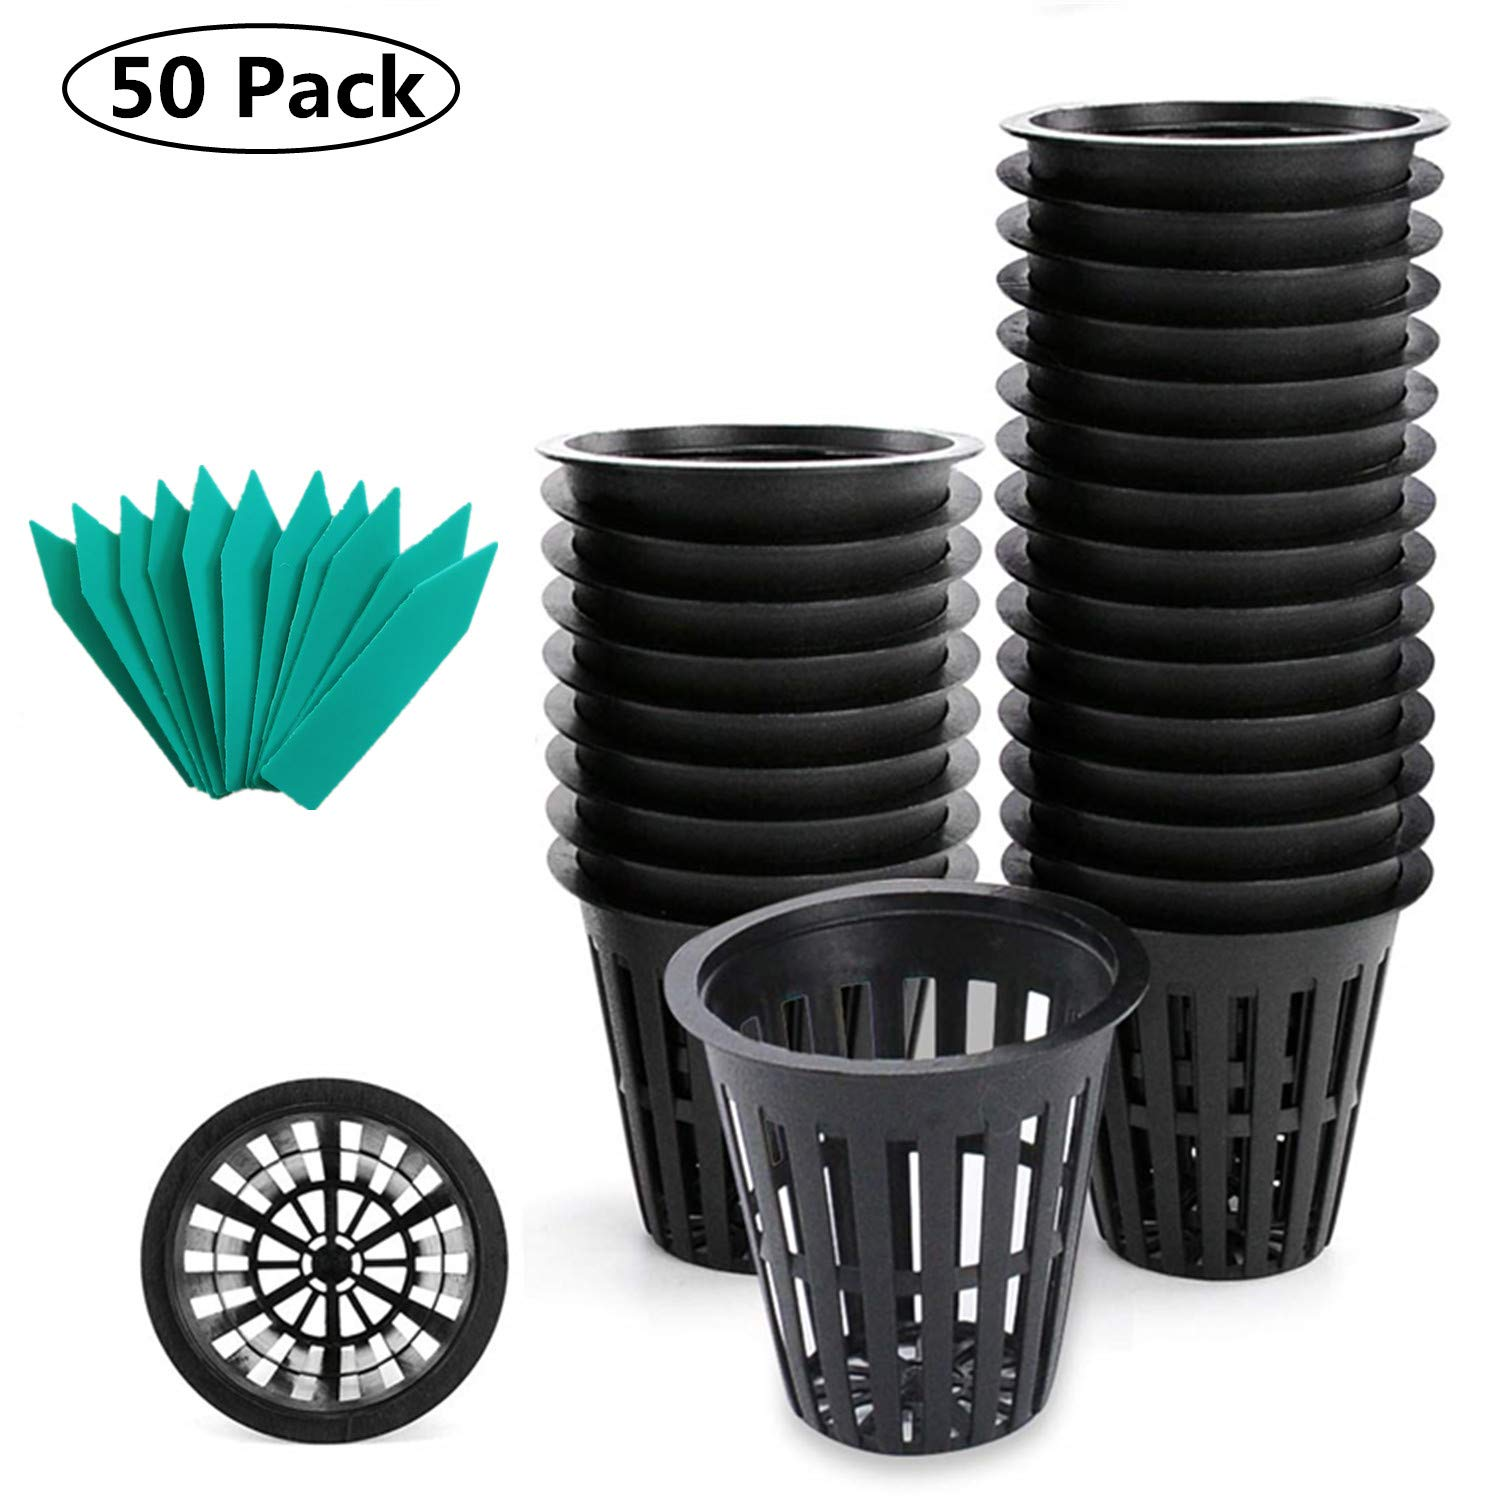 SYOURSELF Nursery Pots 3 inch net Pot, 50 Pack, Garden Slotted Mesh Plastic Plant Net Cup with 50 Plant Labels, Heavy Duty Wide Lip Round Bucket Basket for Hydroponics Black